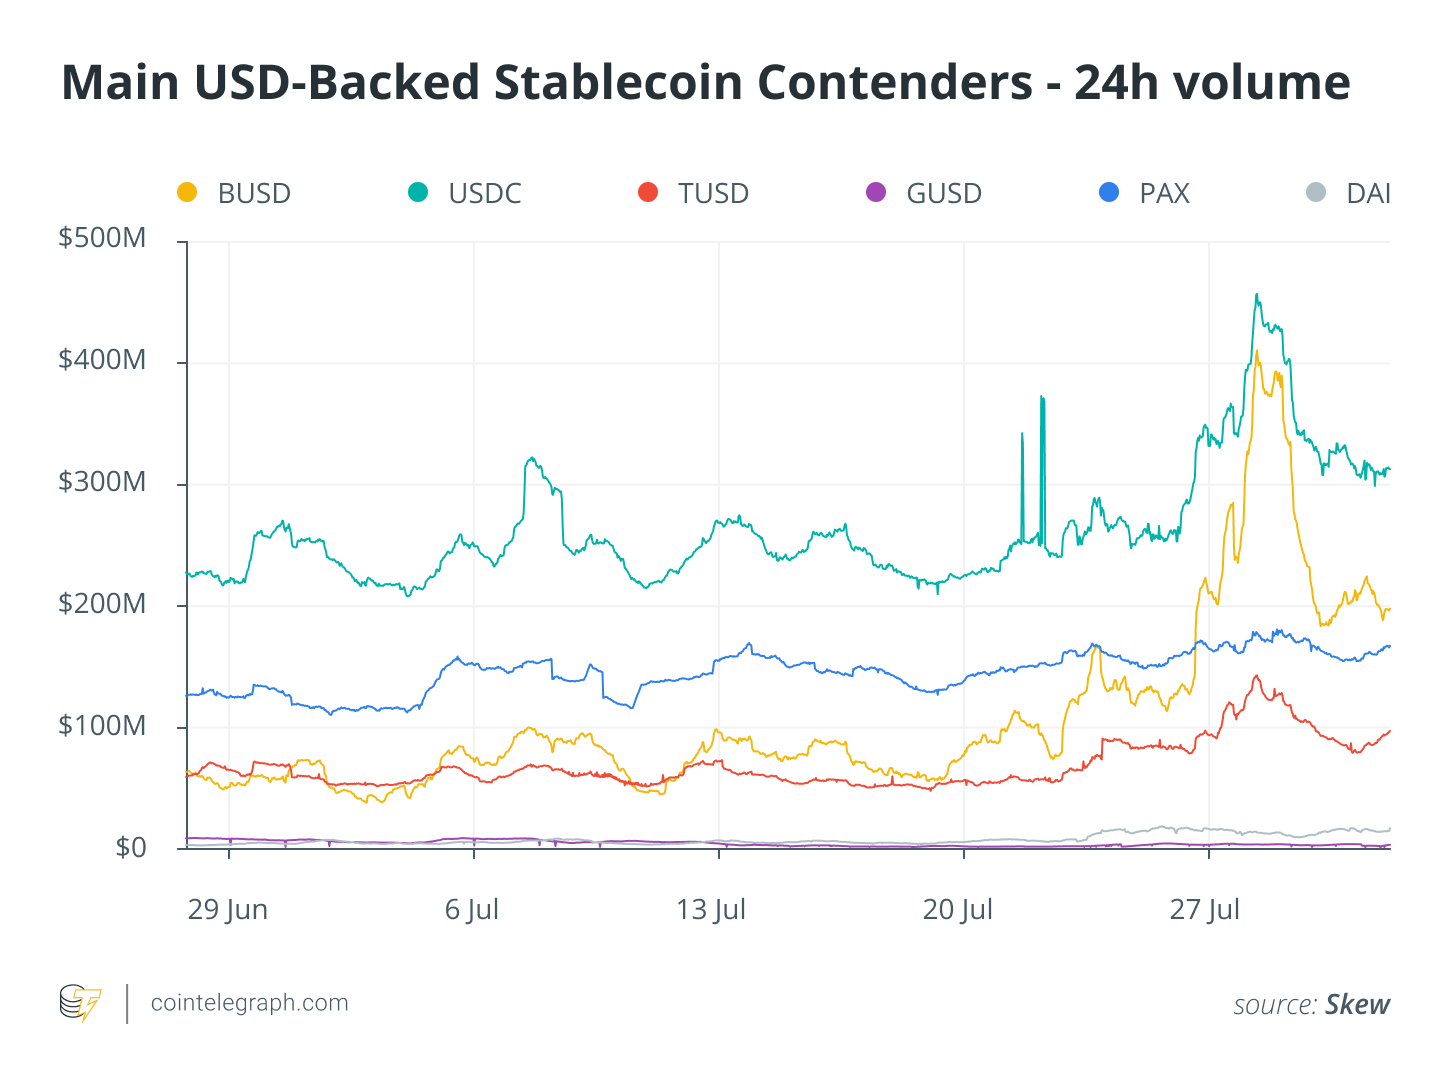 Main USD-Backed Stablecoin Contenders - 24h volume